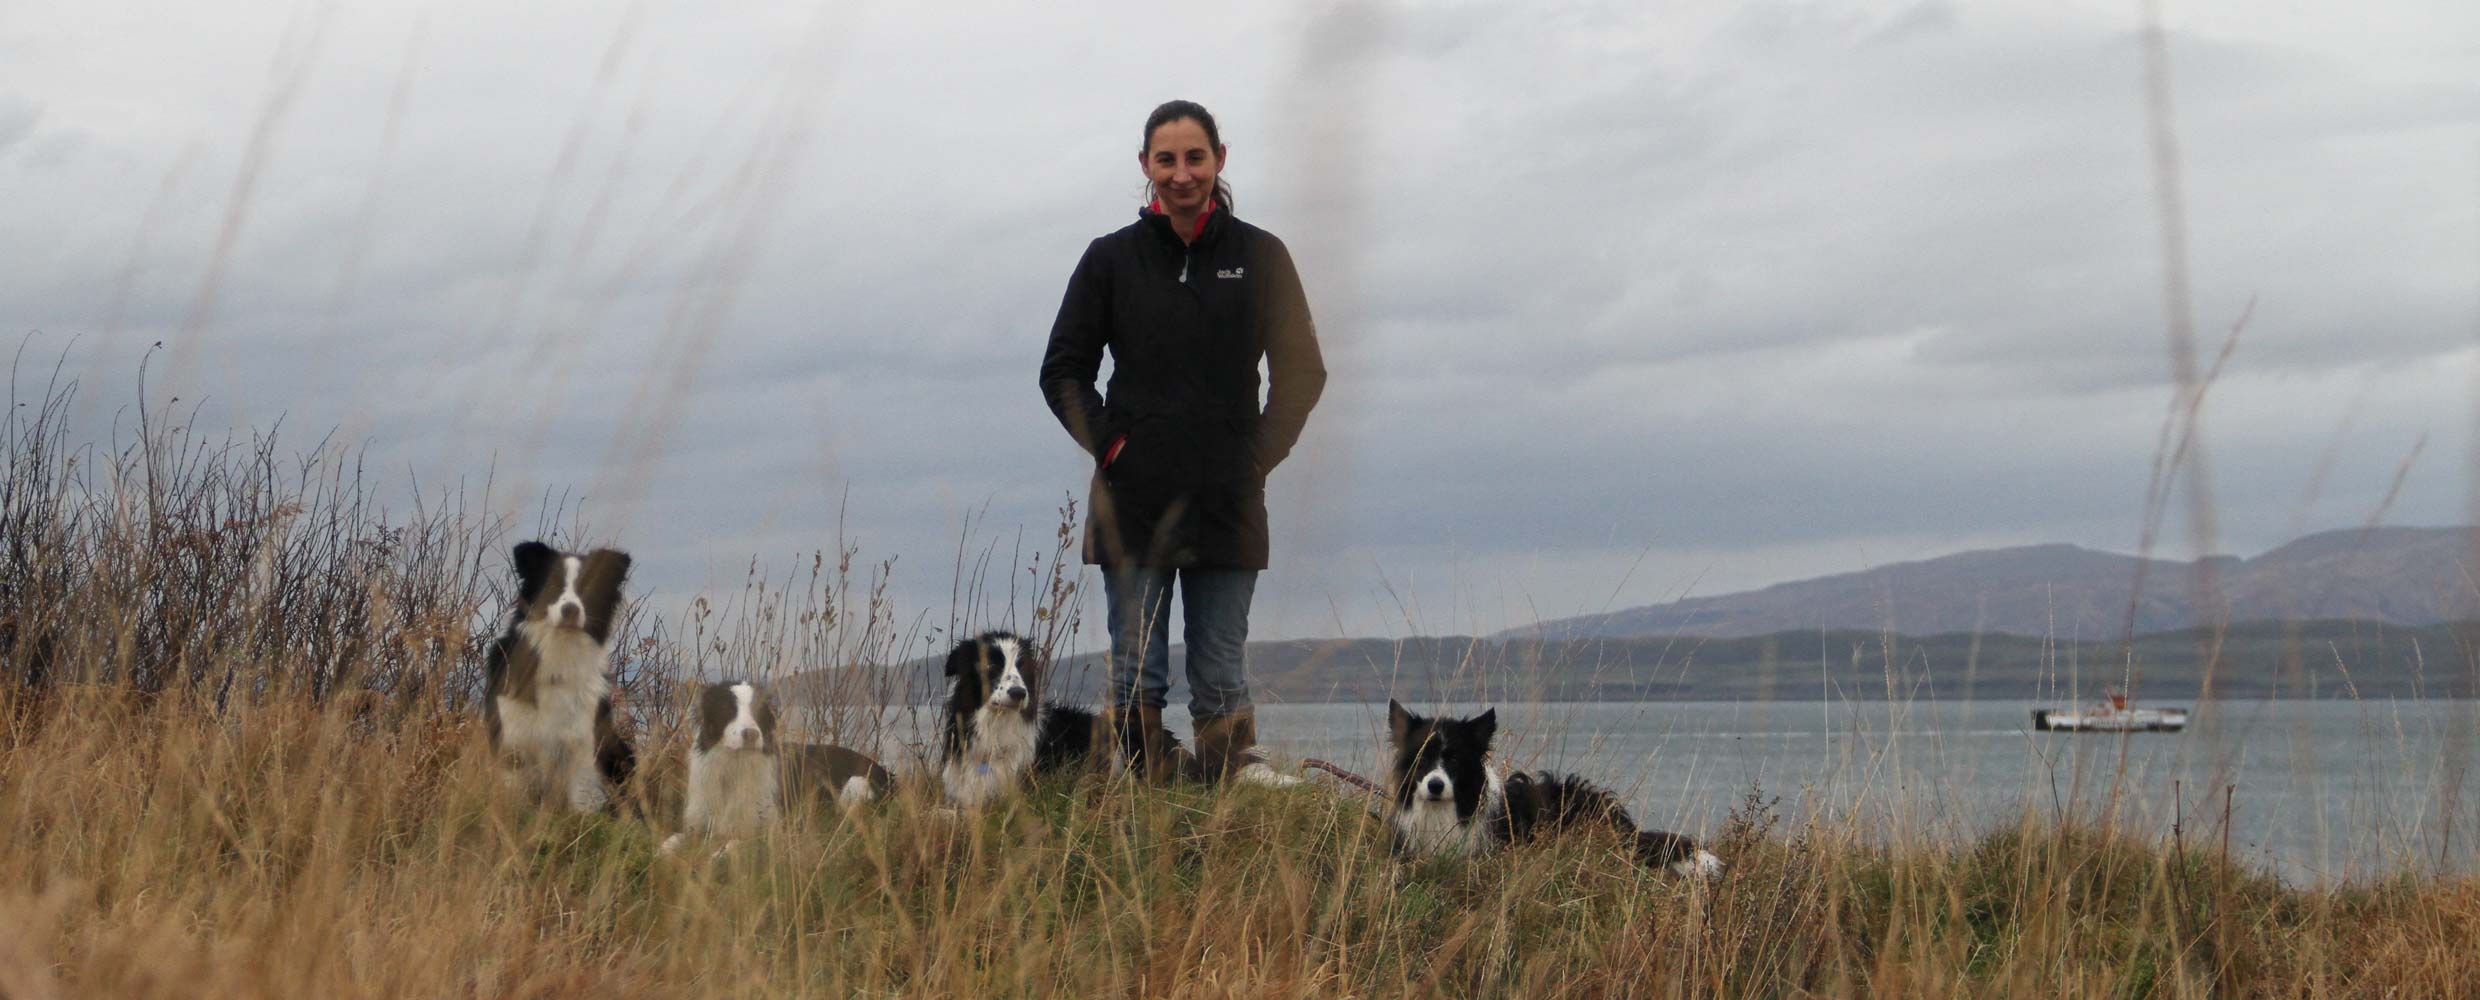 Alison Roets with her Border Collies overlooking Loch Lomond, Scotland